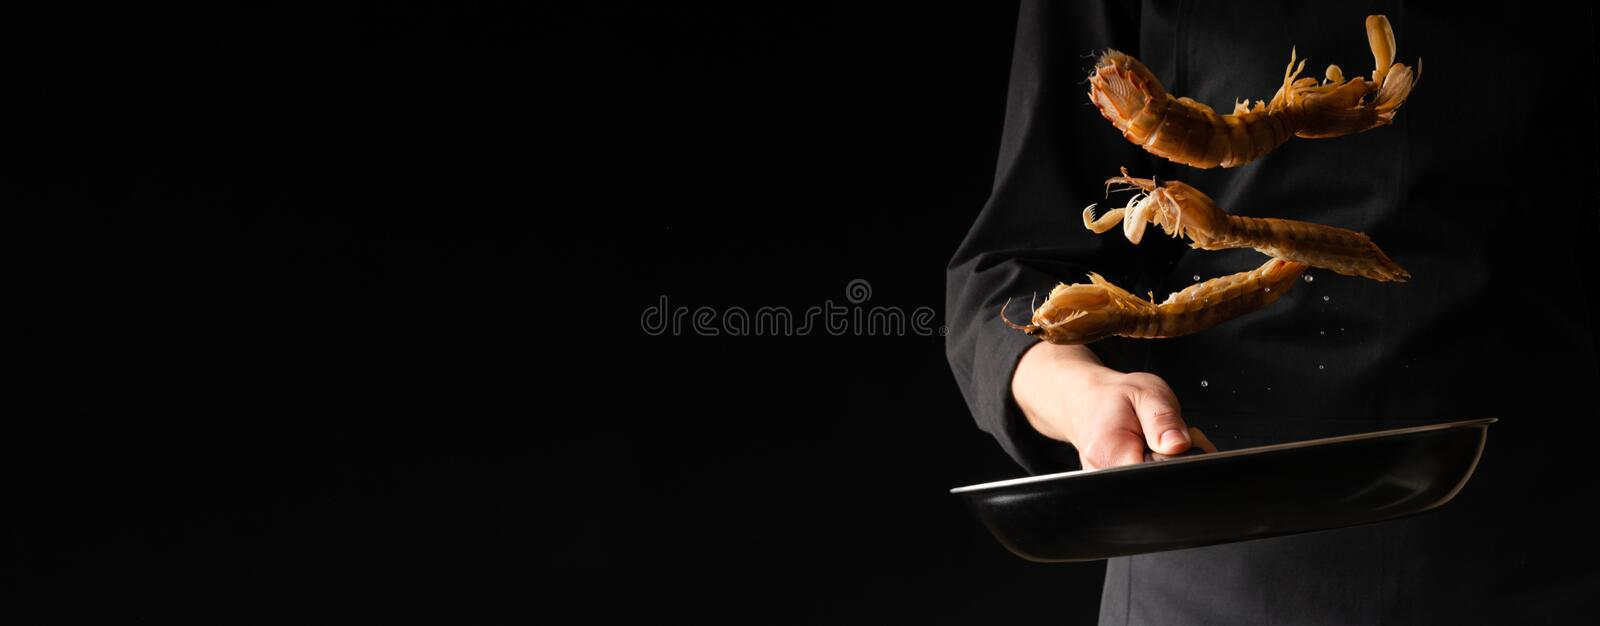 Chef prepares sea food, mantis shrimp, East Asian cuisine, dilikates, on a black background, horizontal photo, banner.  royalty free stock images